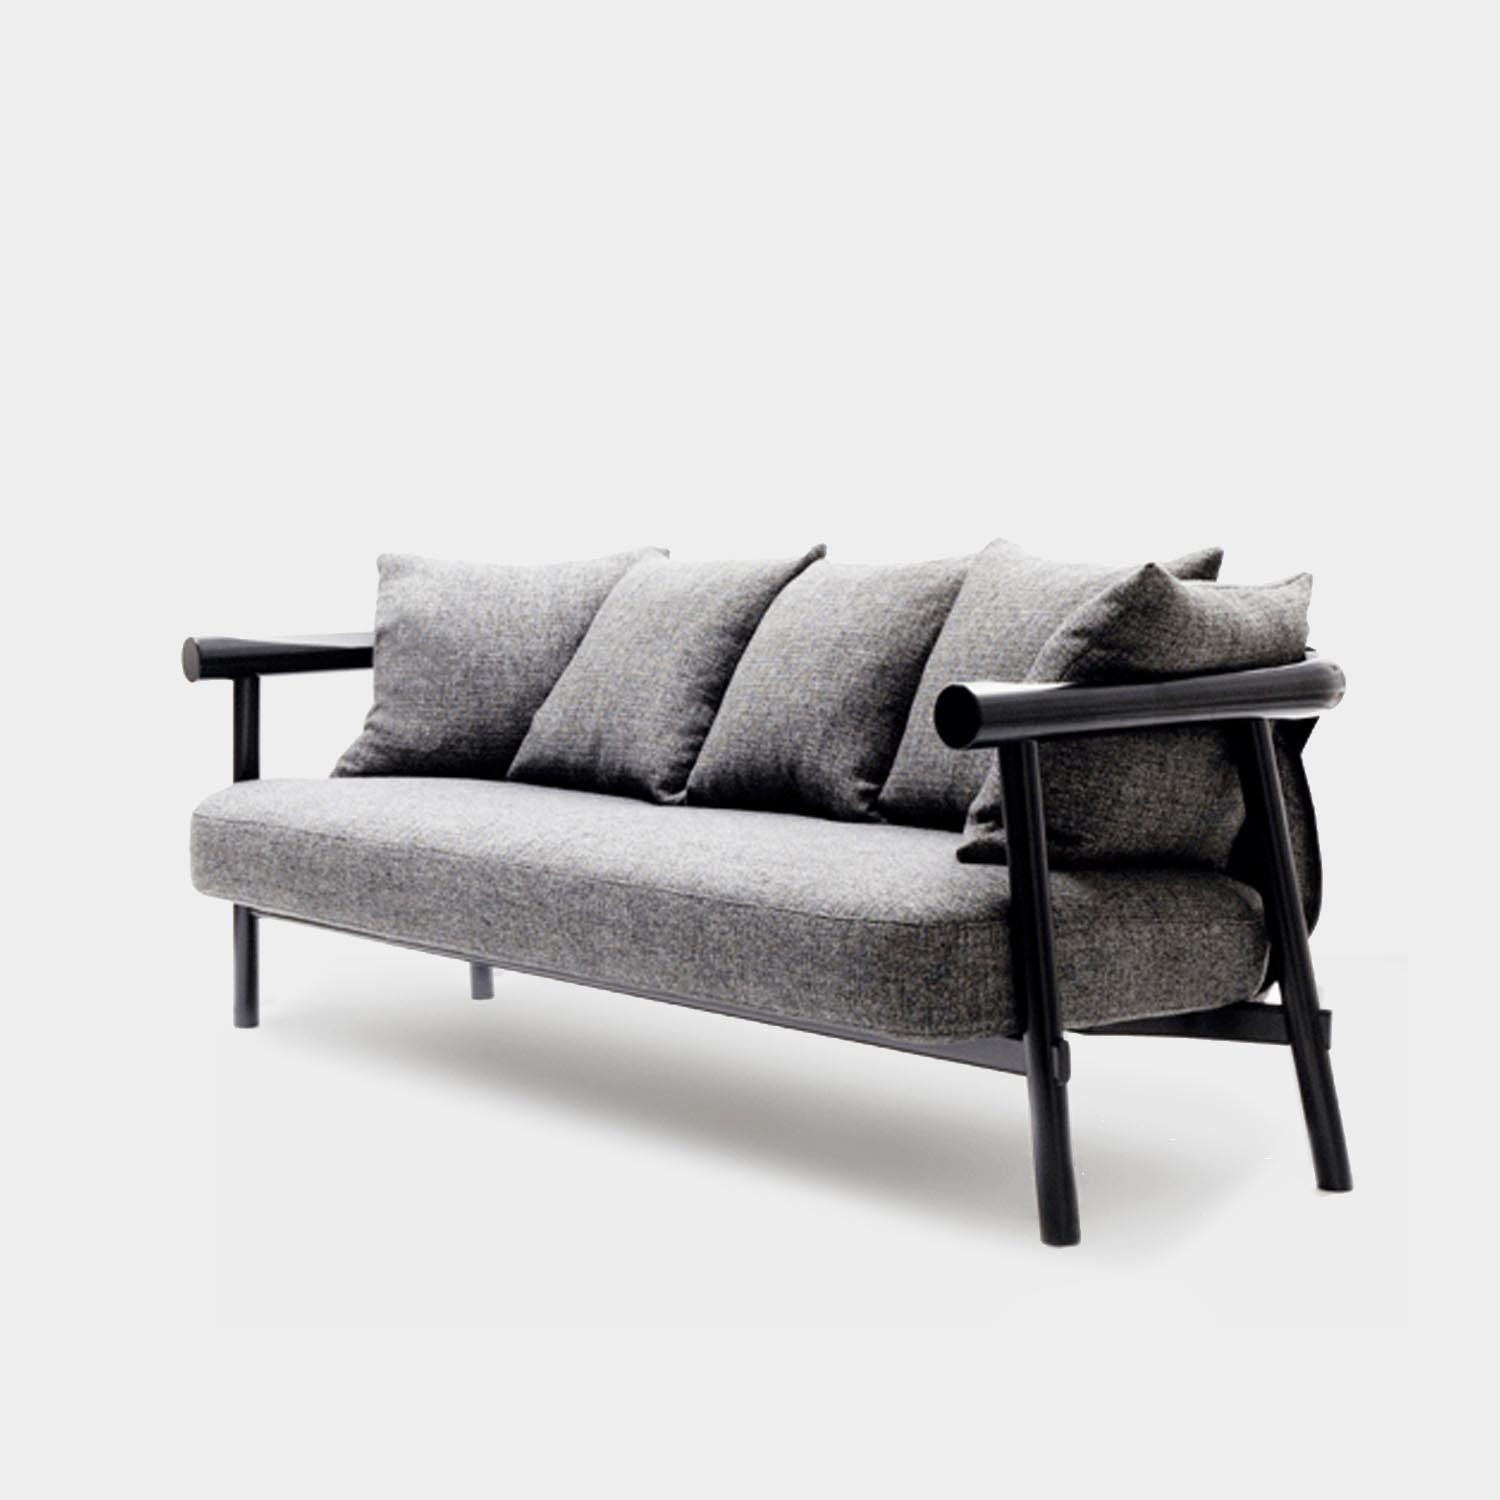 Altay Sofa, Black Structure, Gray Textile Upholstery